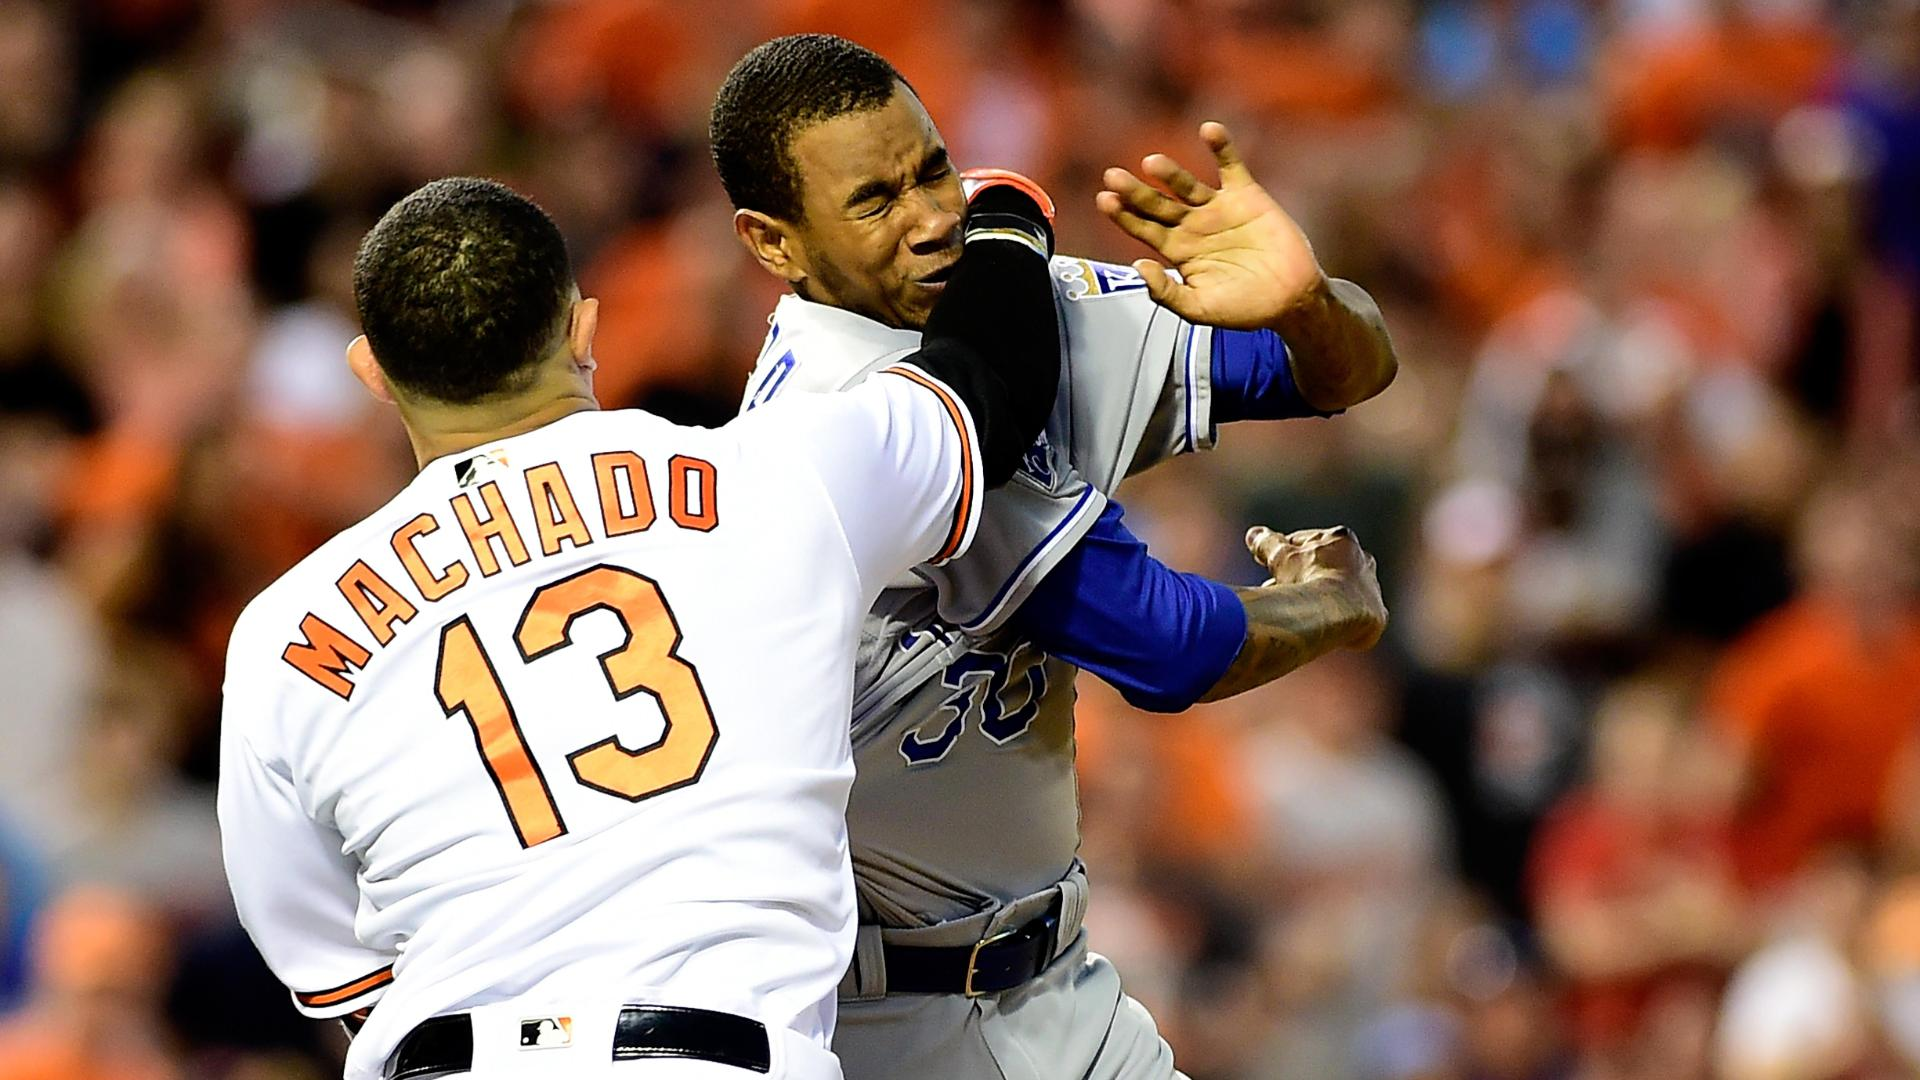 Machado, Ventura turn baseball into a wrestling match